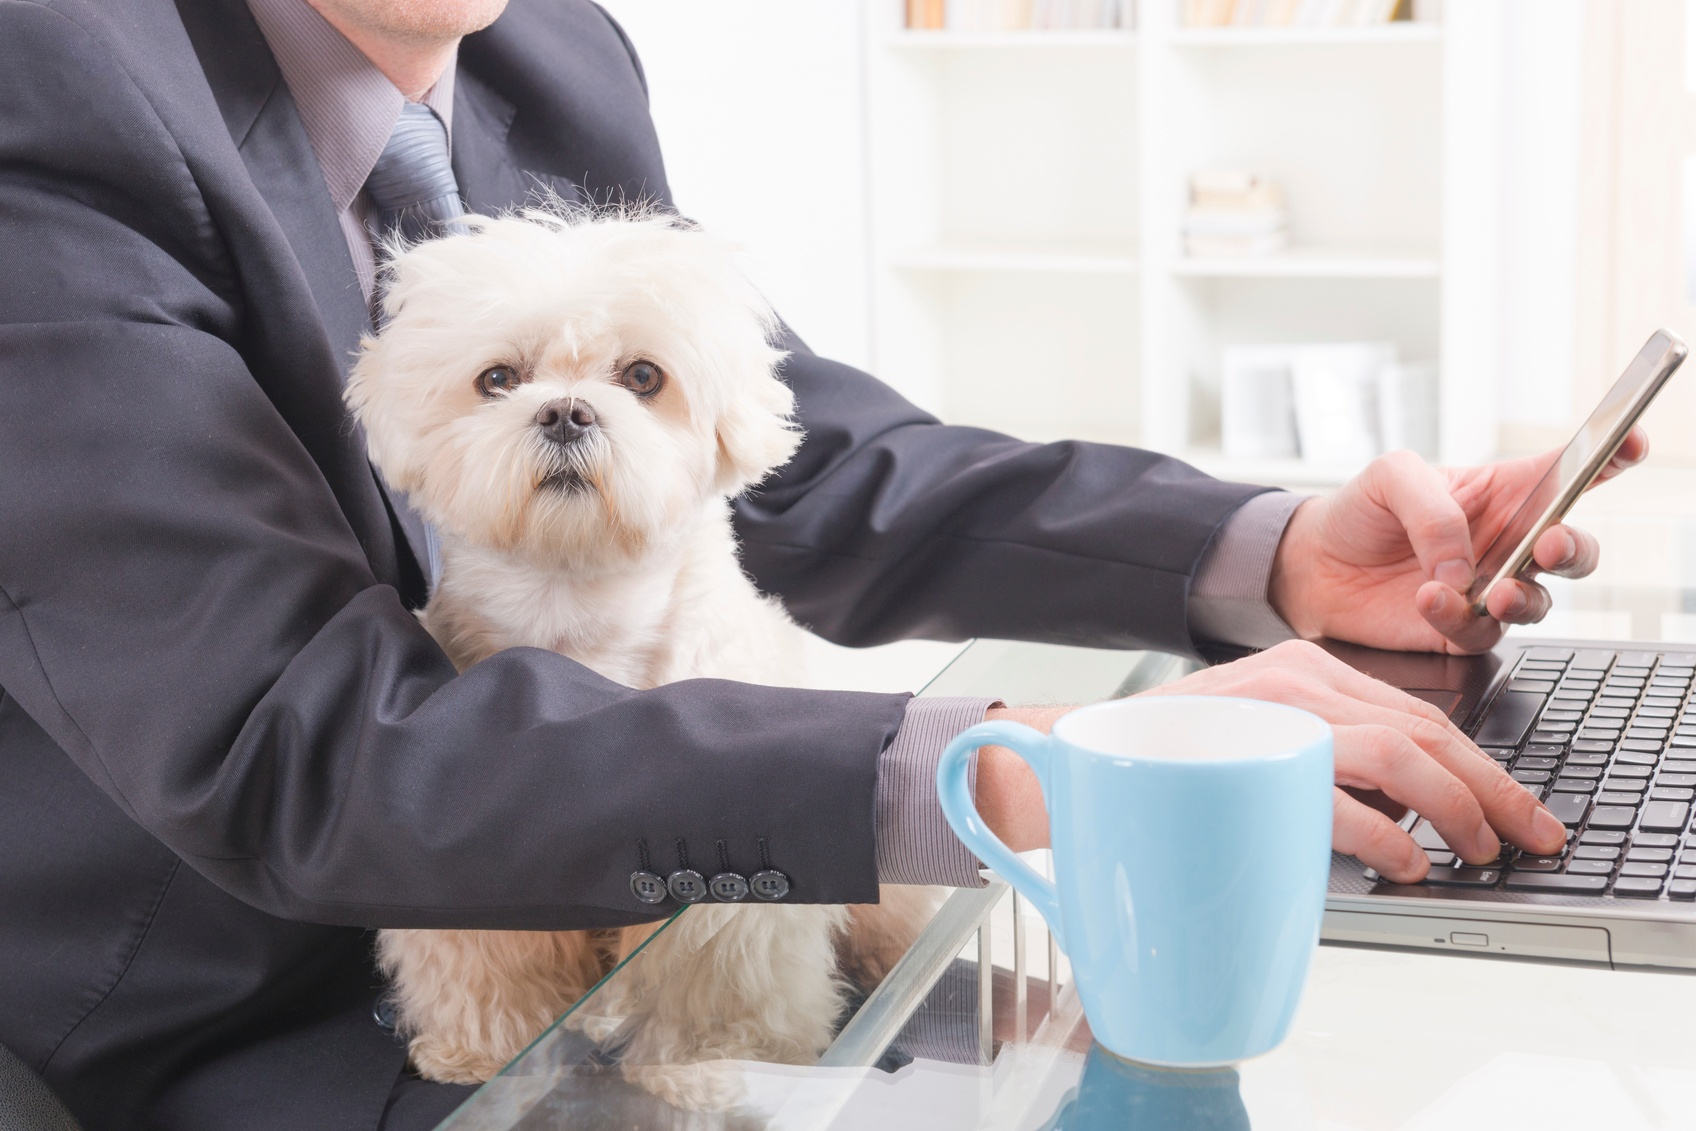 More Companies Are Welcoming Pets at Work (& Insuring Them Too) - Featured Image